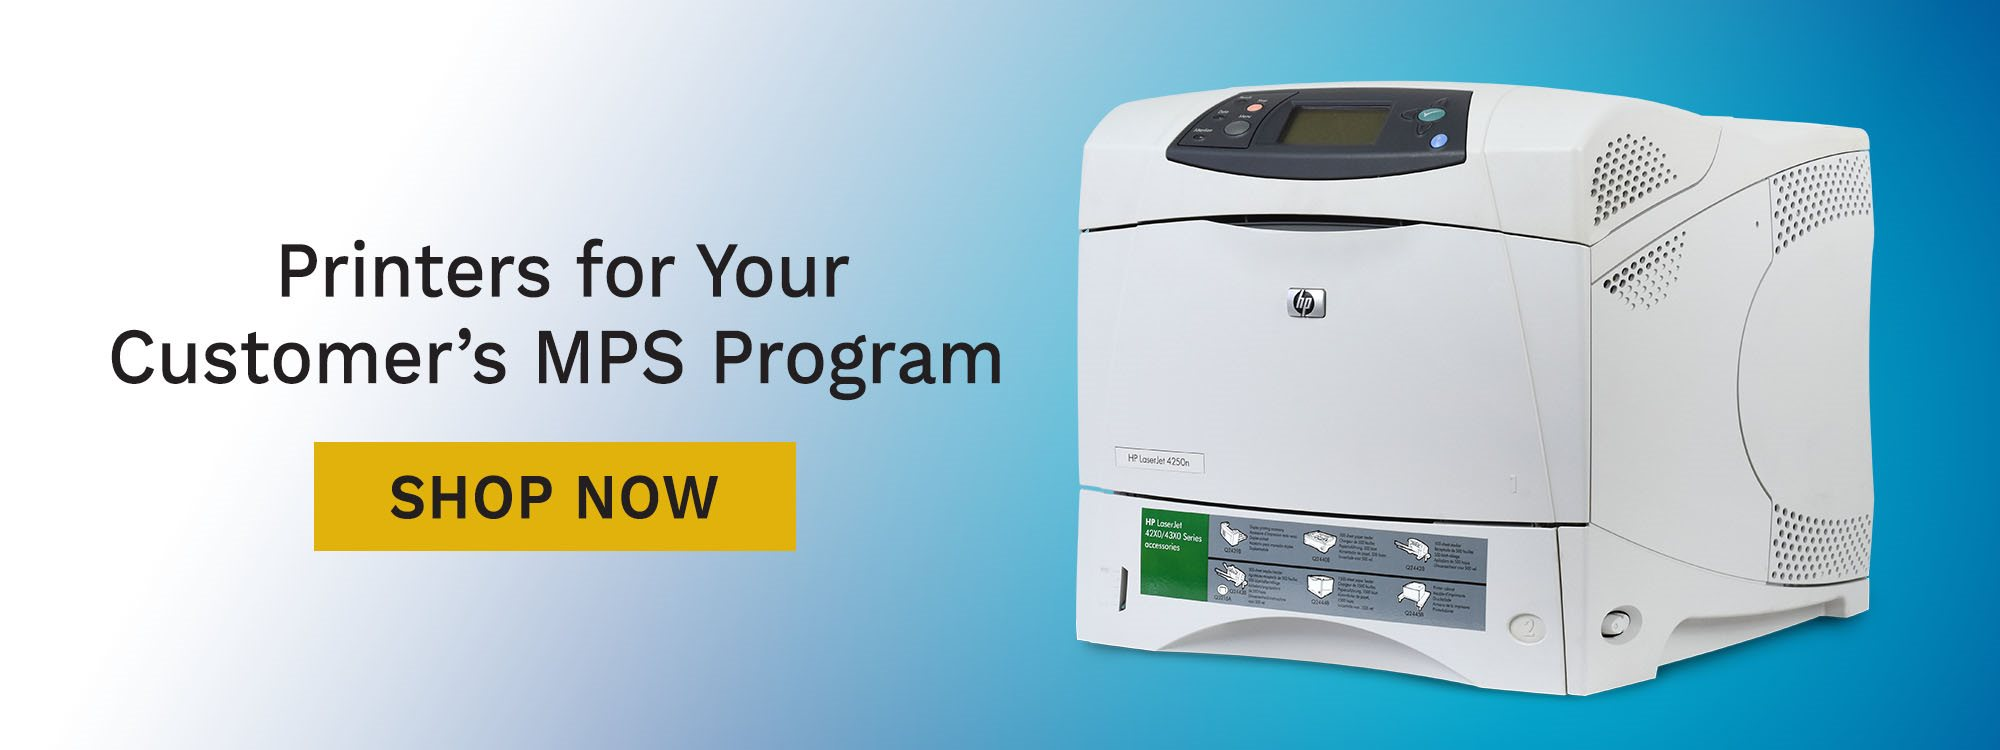 Printers For Your Customer's MPS Program - Shop Now